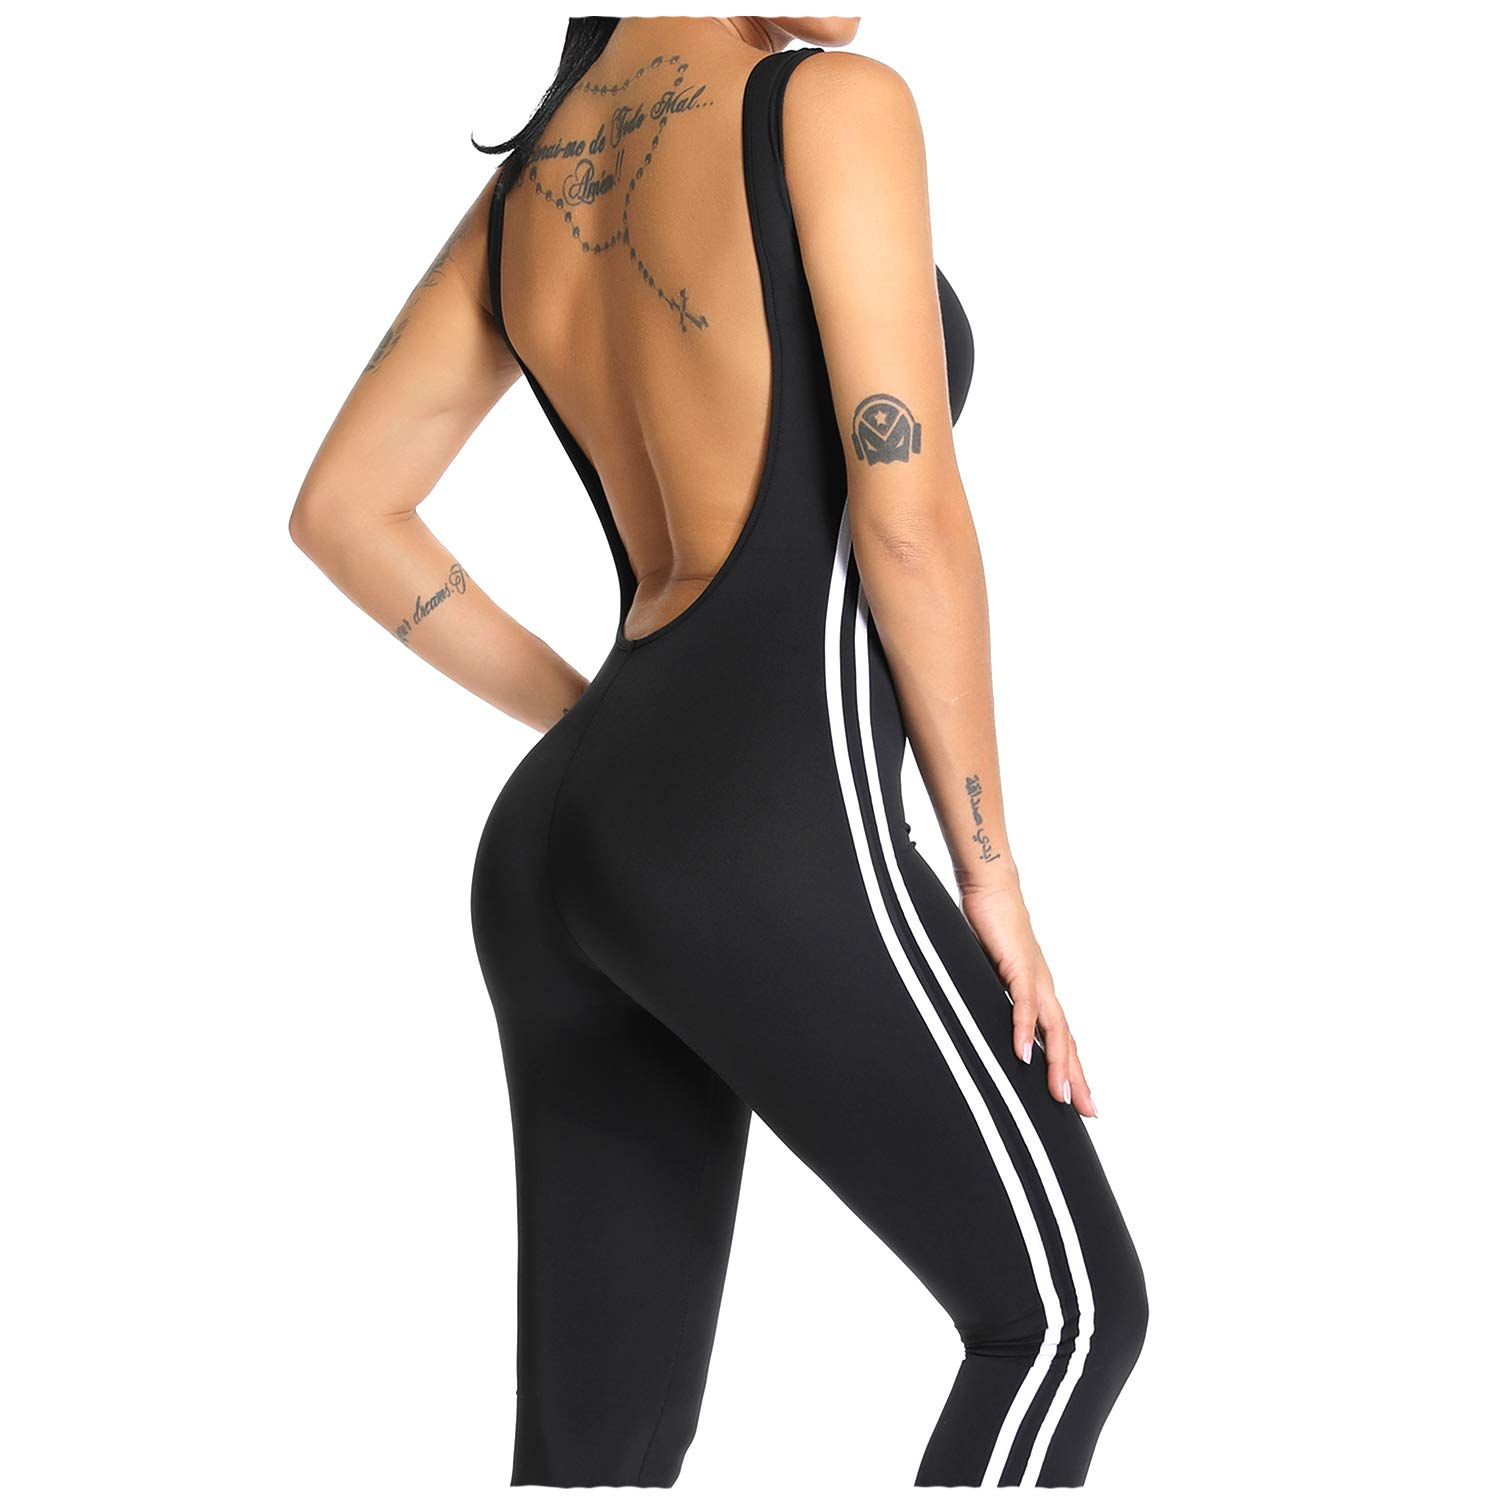 1 Black YOFIT Women Sexy Jumpsuits Athletic Clothes LowCut Back Yoga Rompers Sleeveless Bodysuit